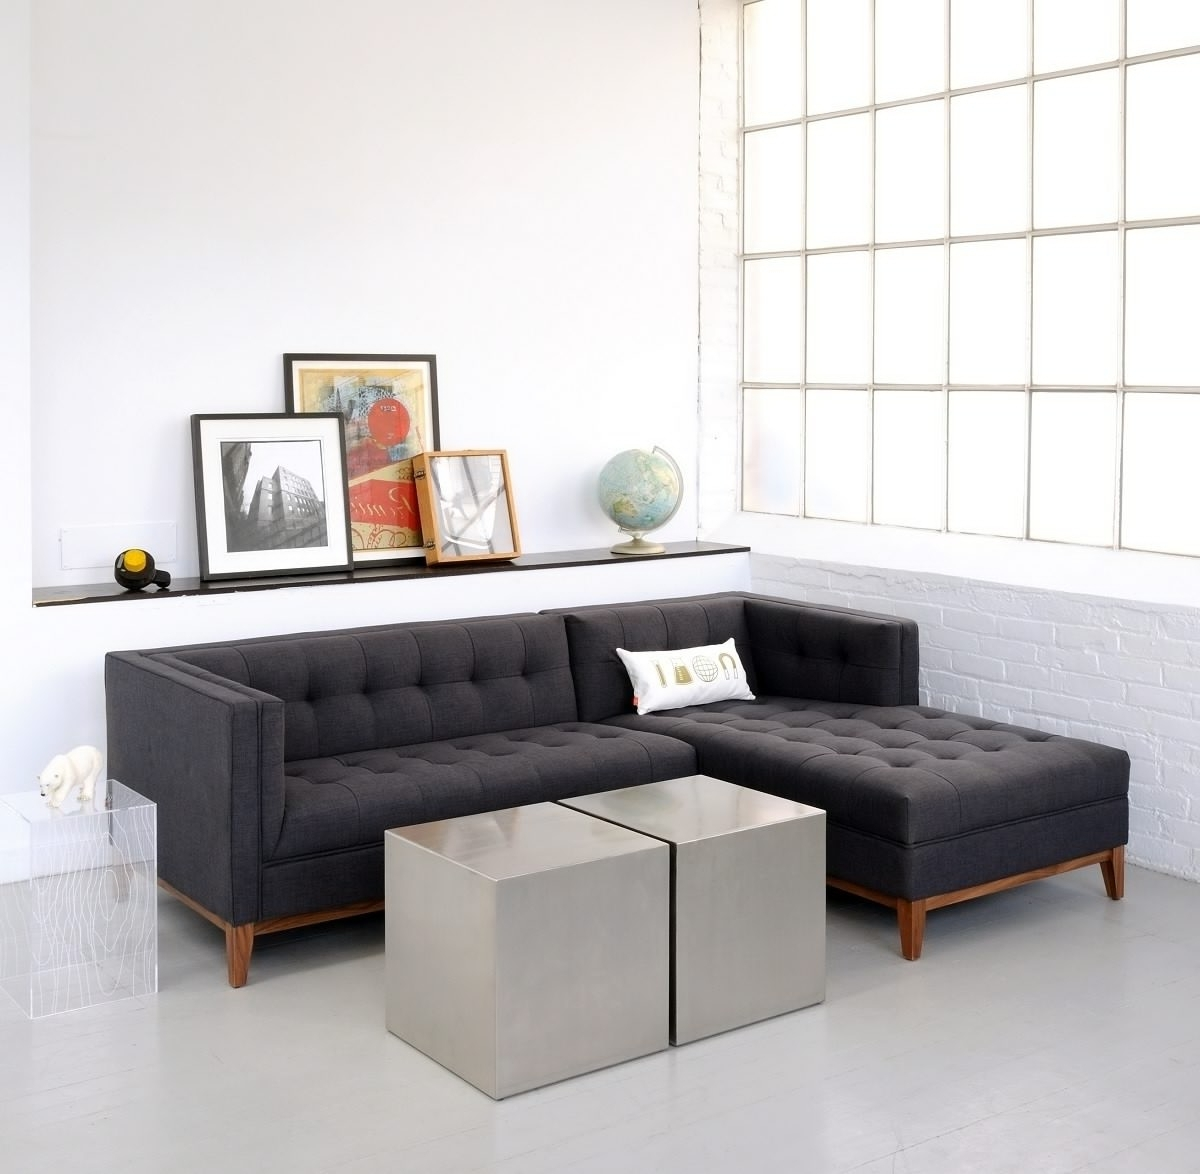 Sectional Sofas For Condos Intended For Fashionable Sectional Sofa Design: Apartment Size Sectional Sofa Bed Chaise (Gallery 9 of 20)